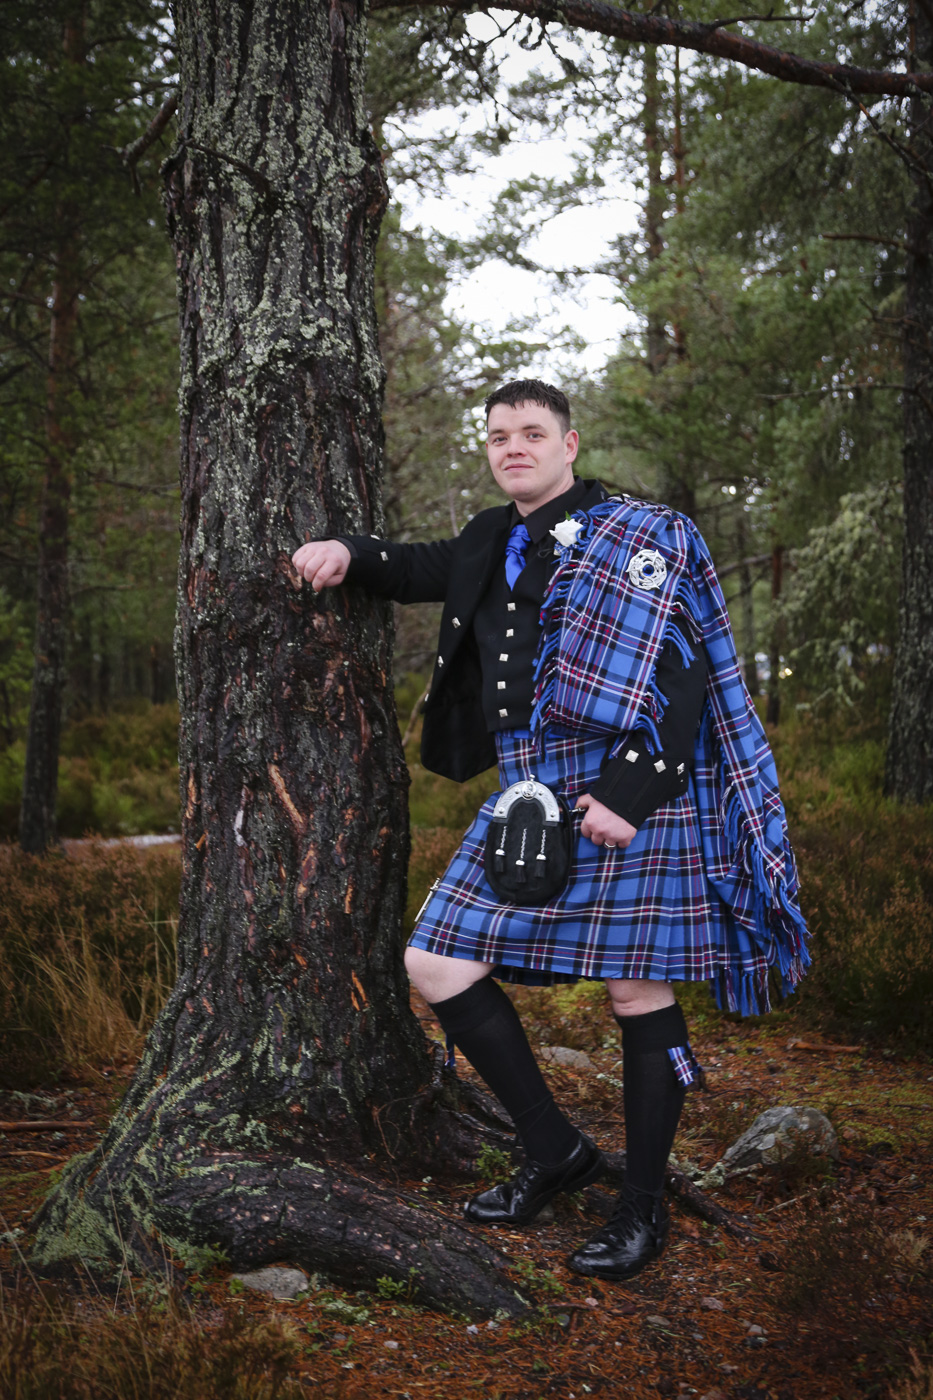 wedding-photography-at-the-hilton-coylumbridge-aviemore-8037